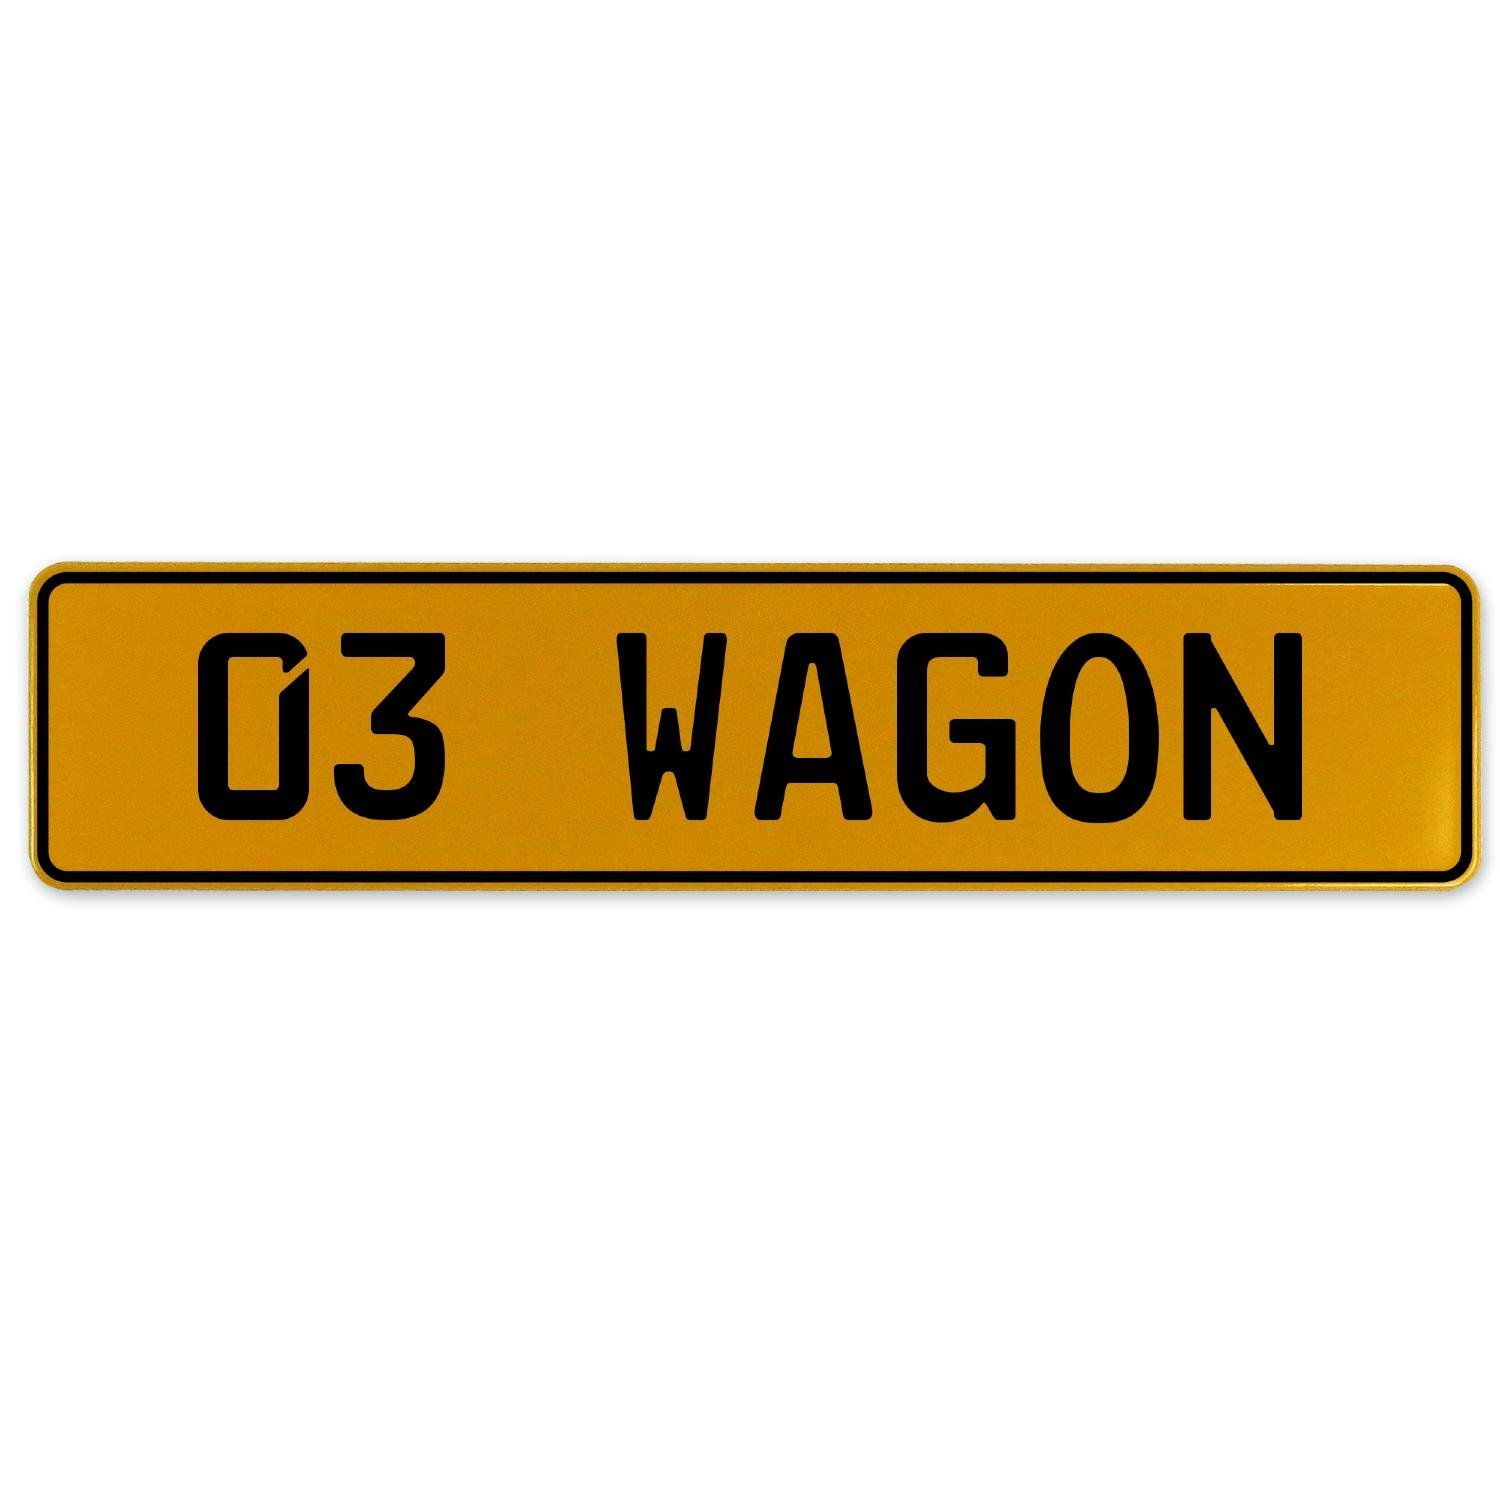 Vintage Parts 563214 03 Wagon Yellow Stamped Aluminum European Plate